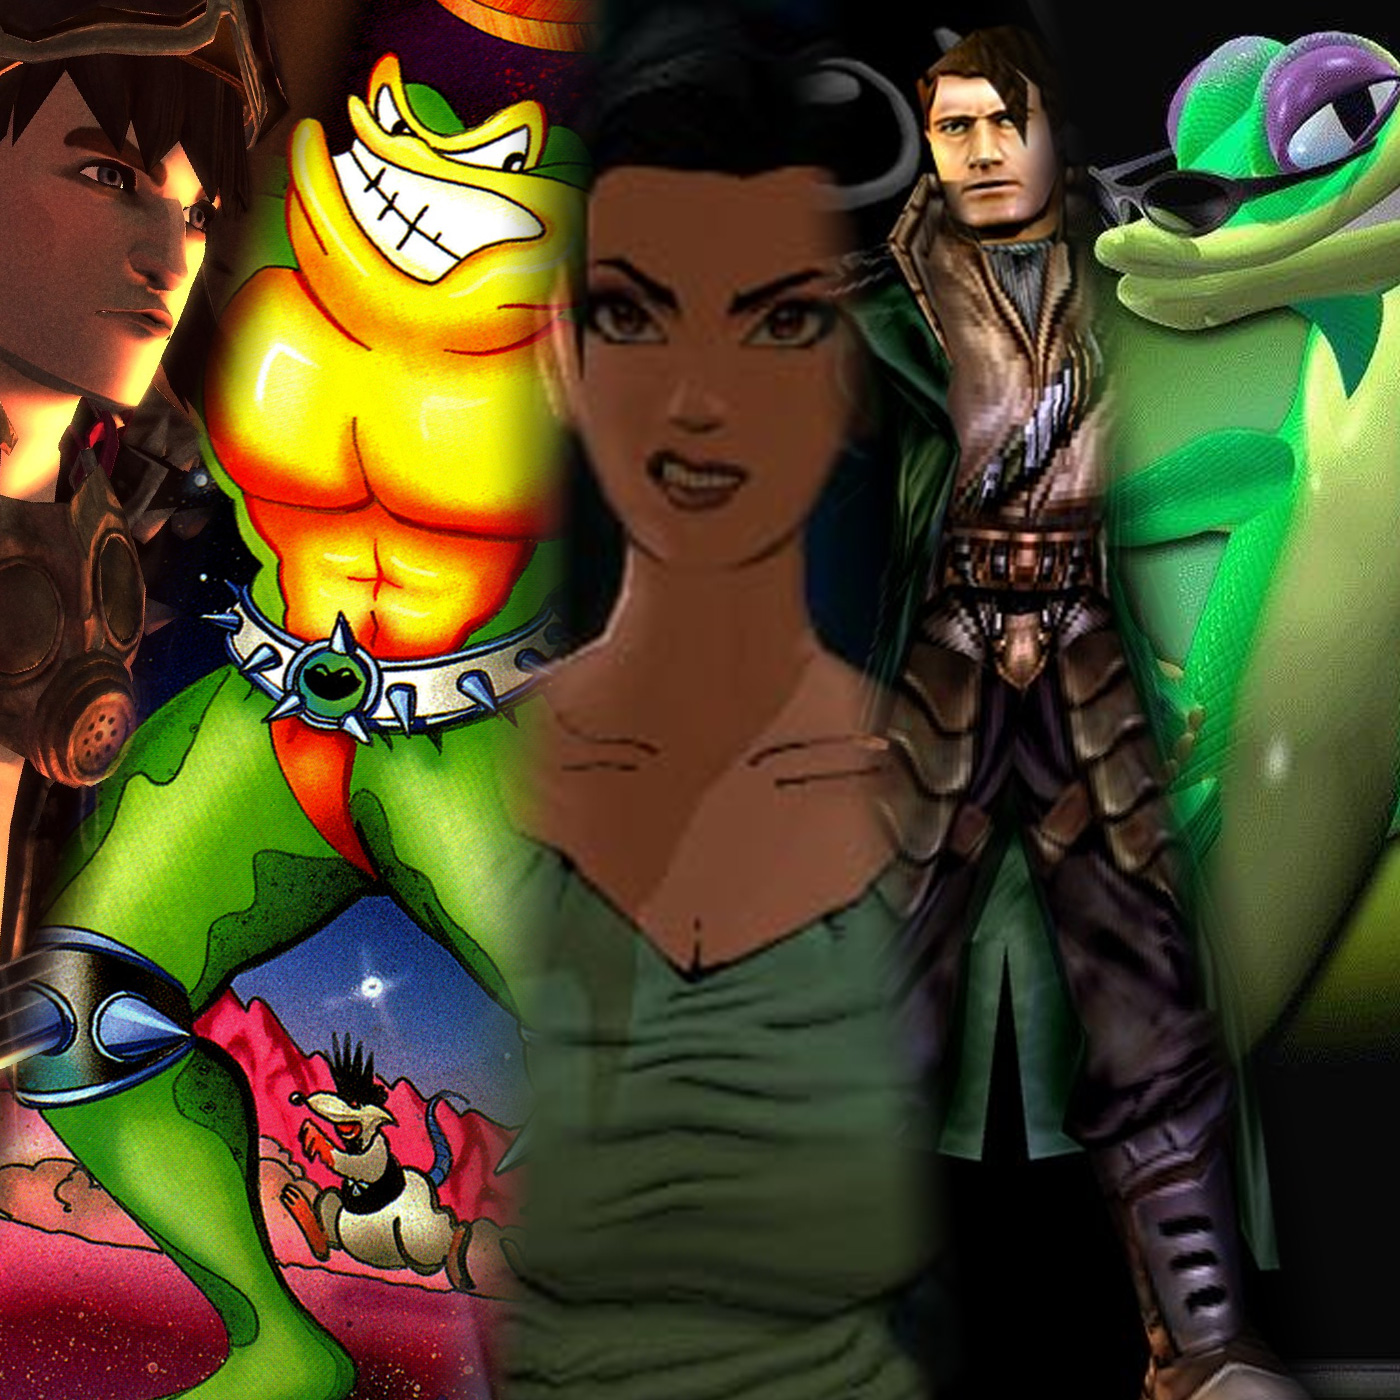 Top 5 - Ways We Would Pitch A New Rock Band/Battletoads/Fear Effect/Anachronox/Gex